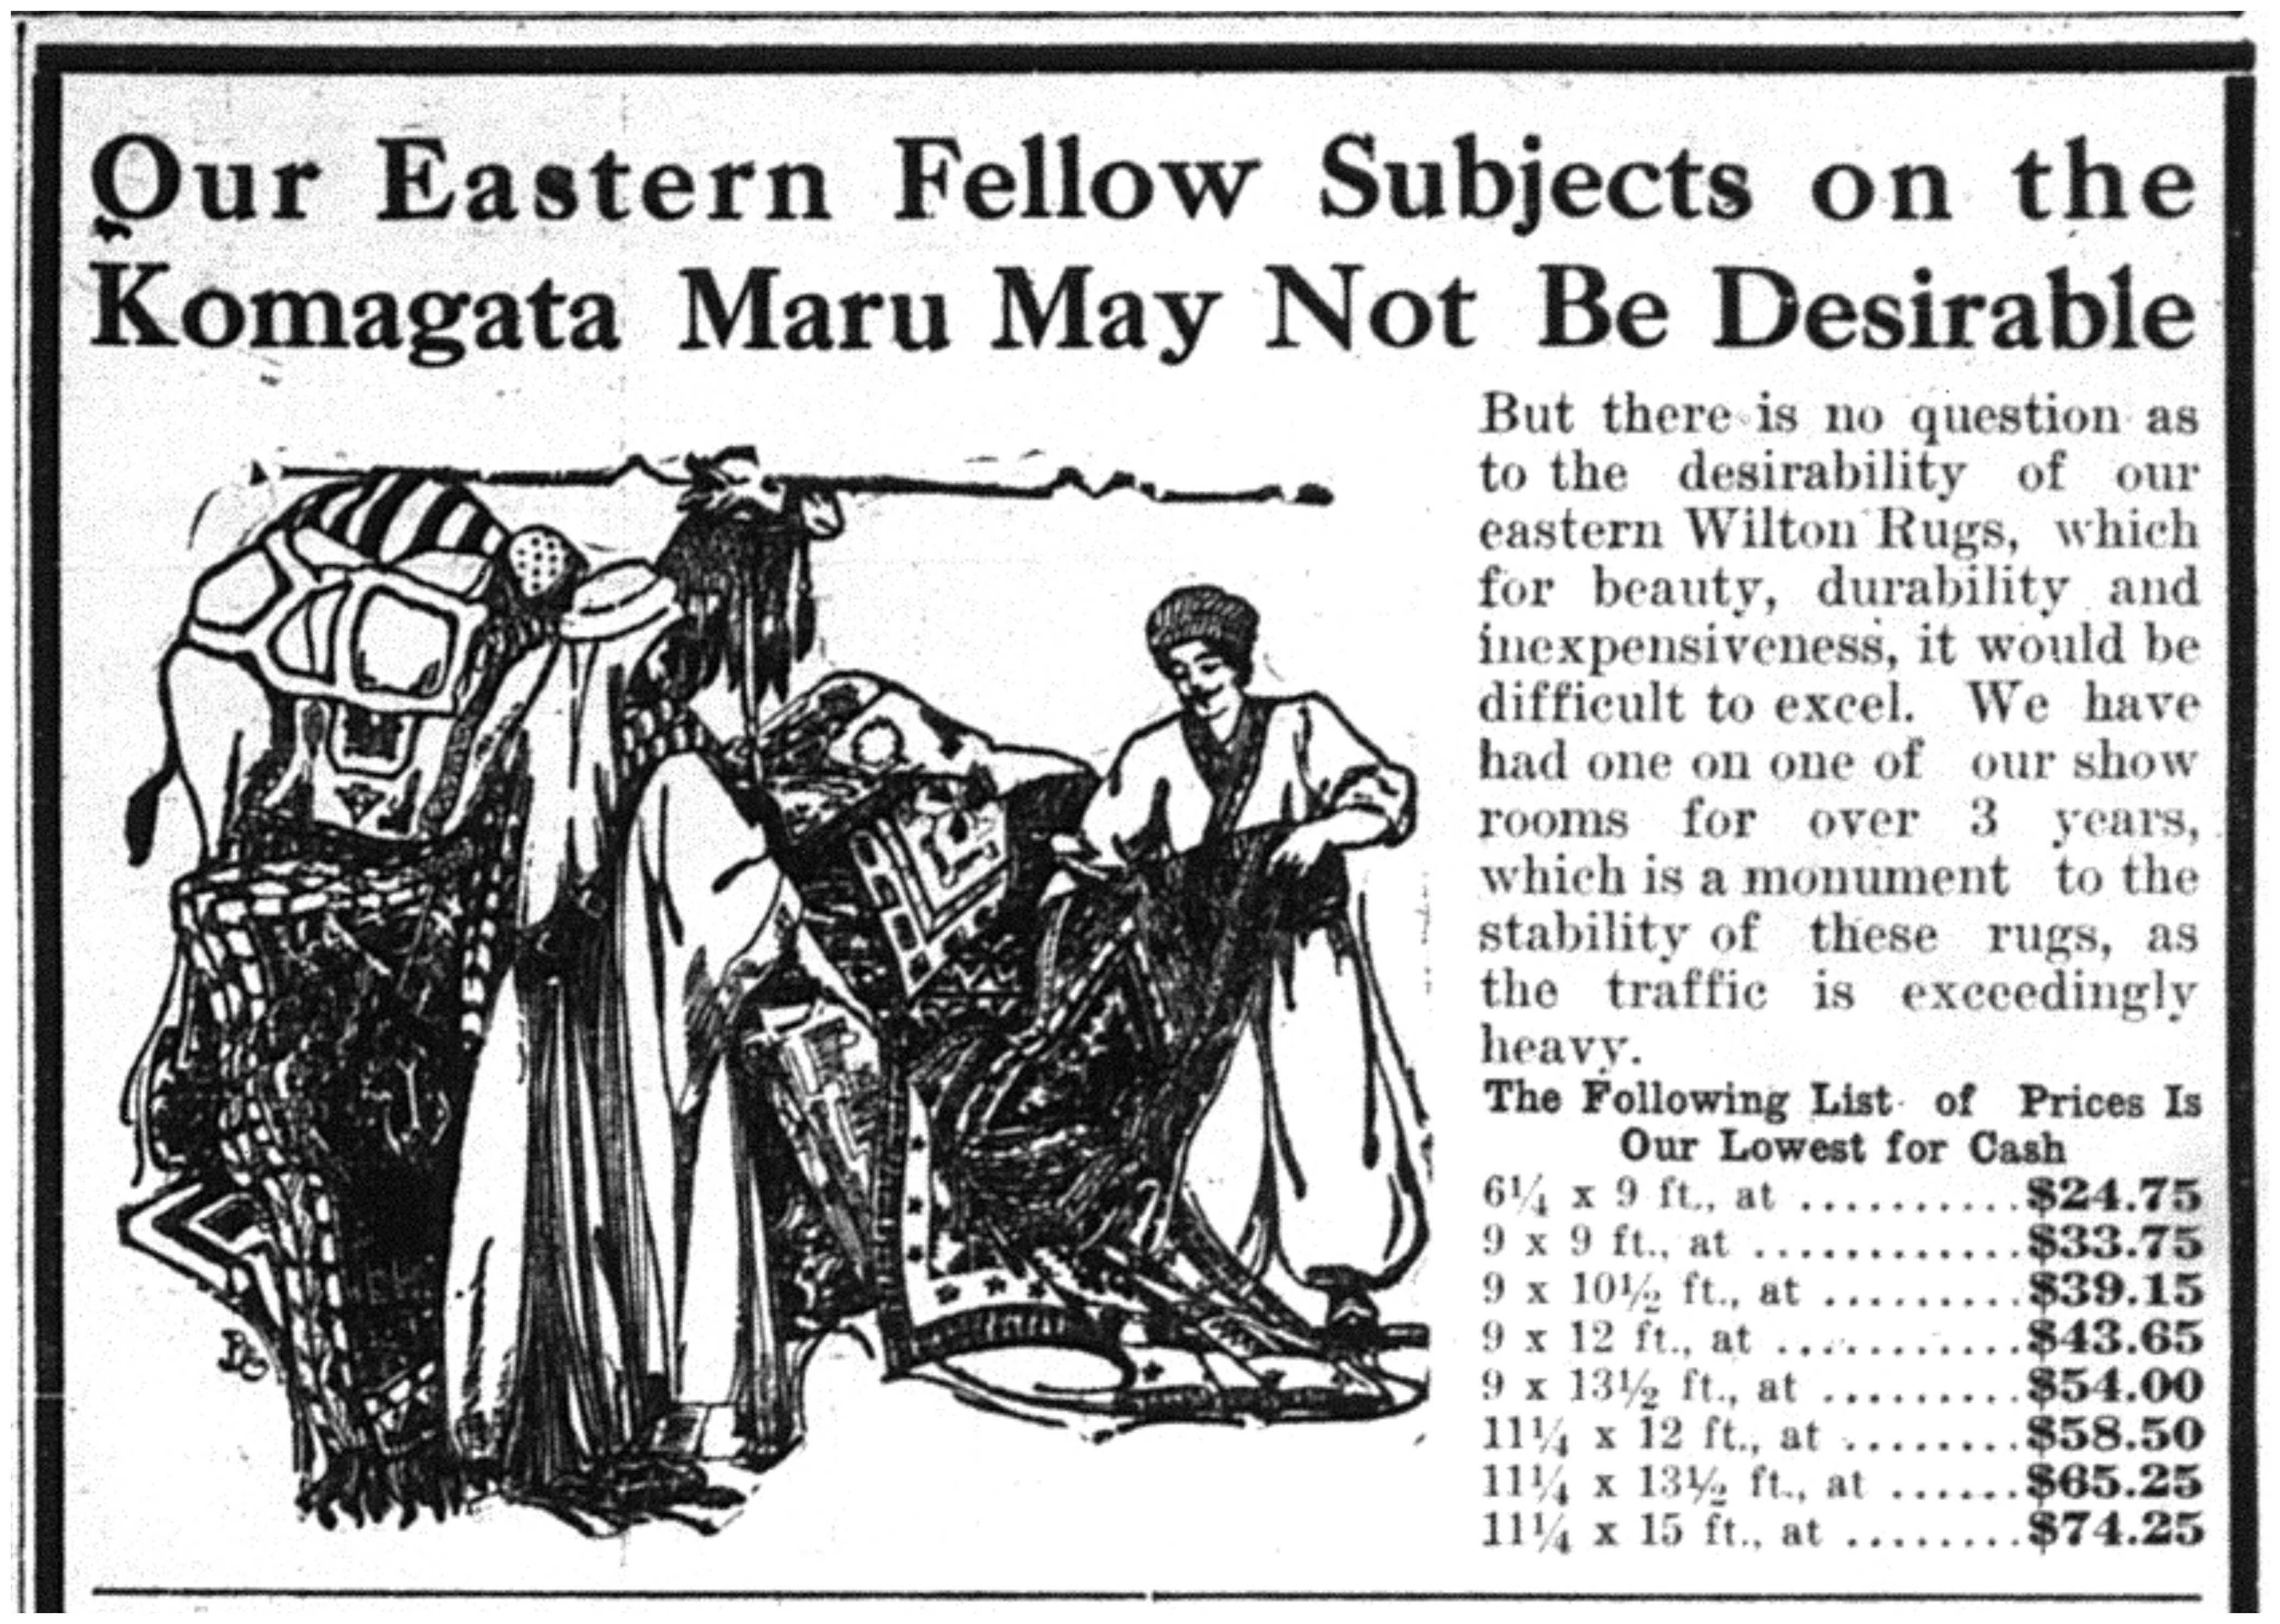 """Our Eastern Fellow Subjects on the Komagata Maru May Not Be Desirable..."""